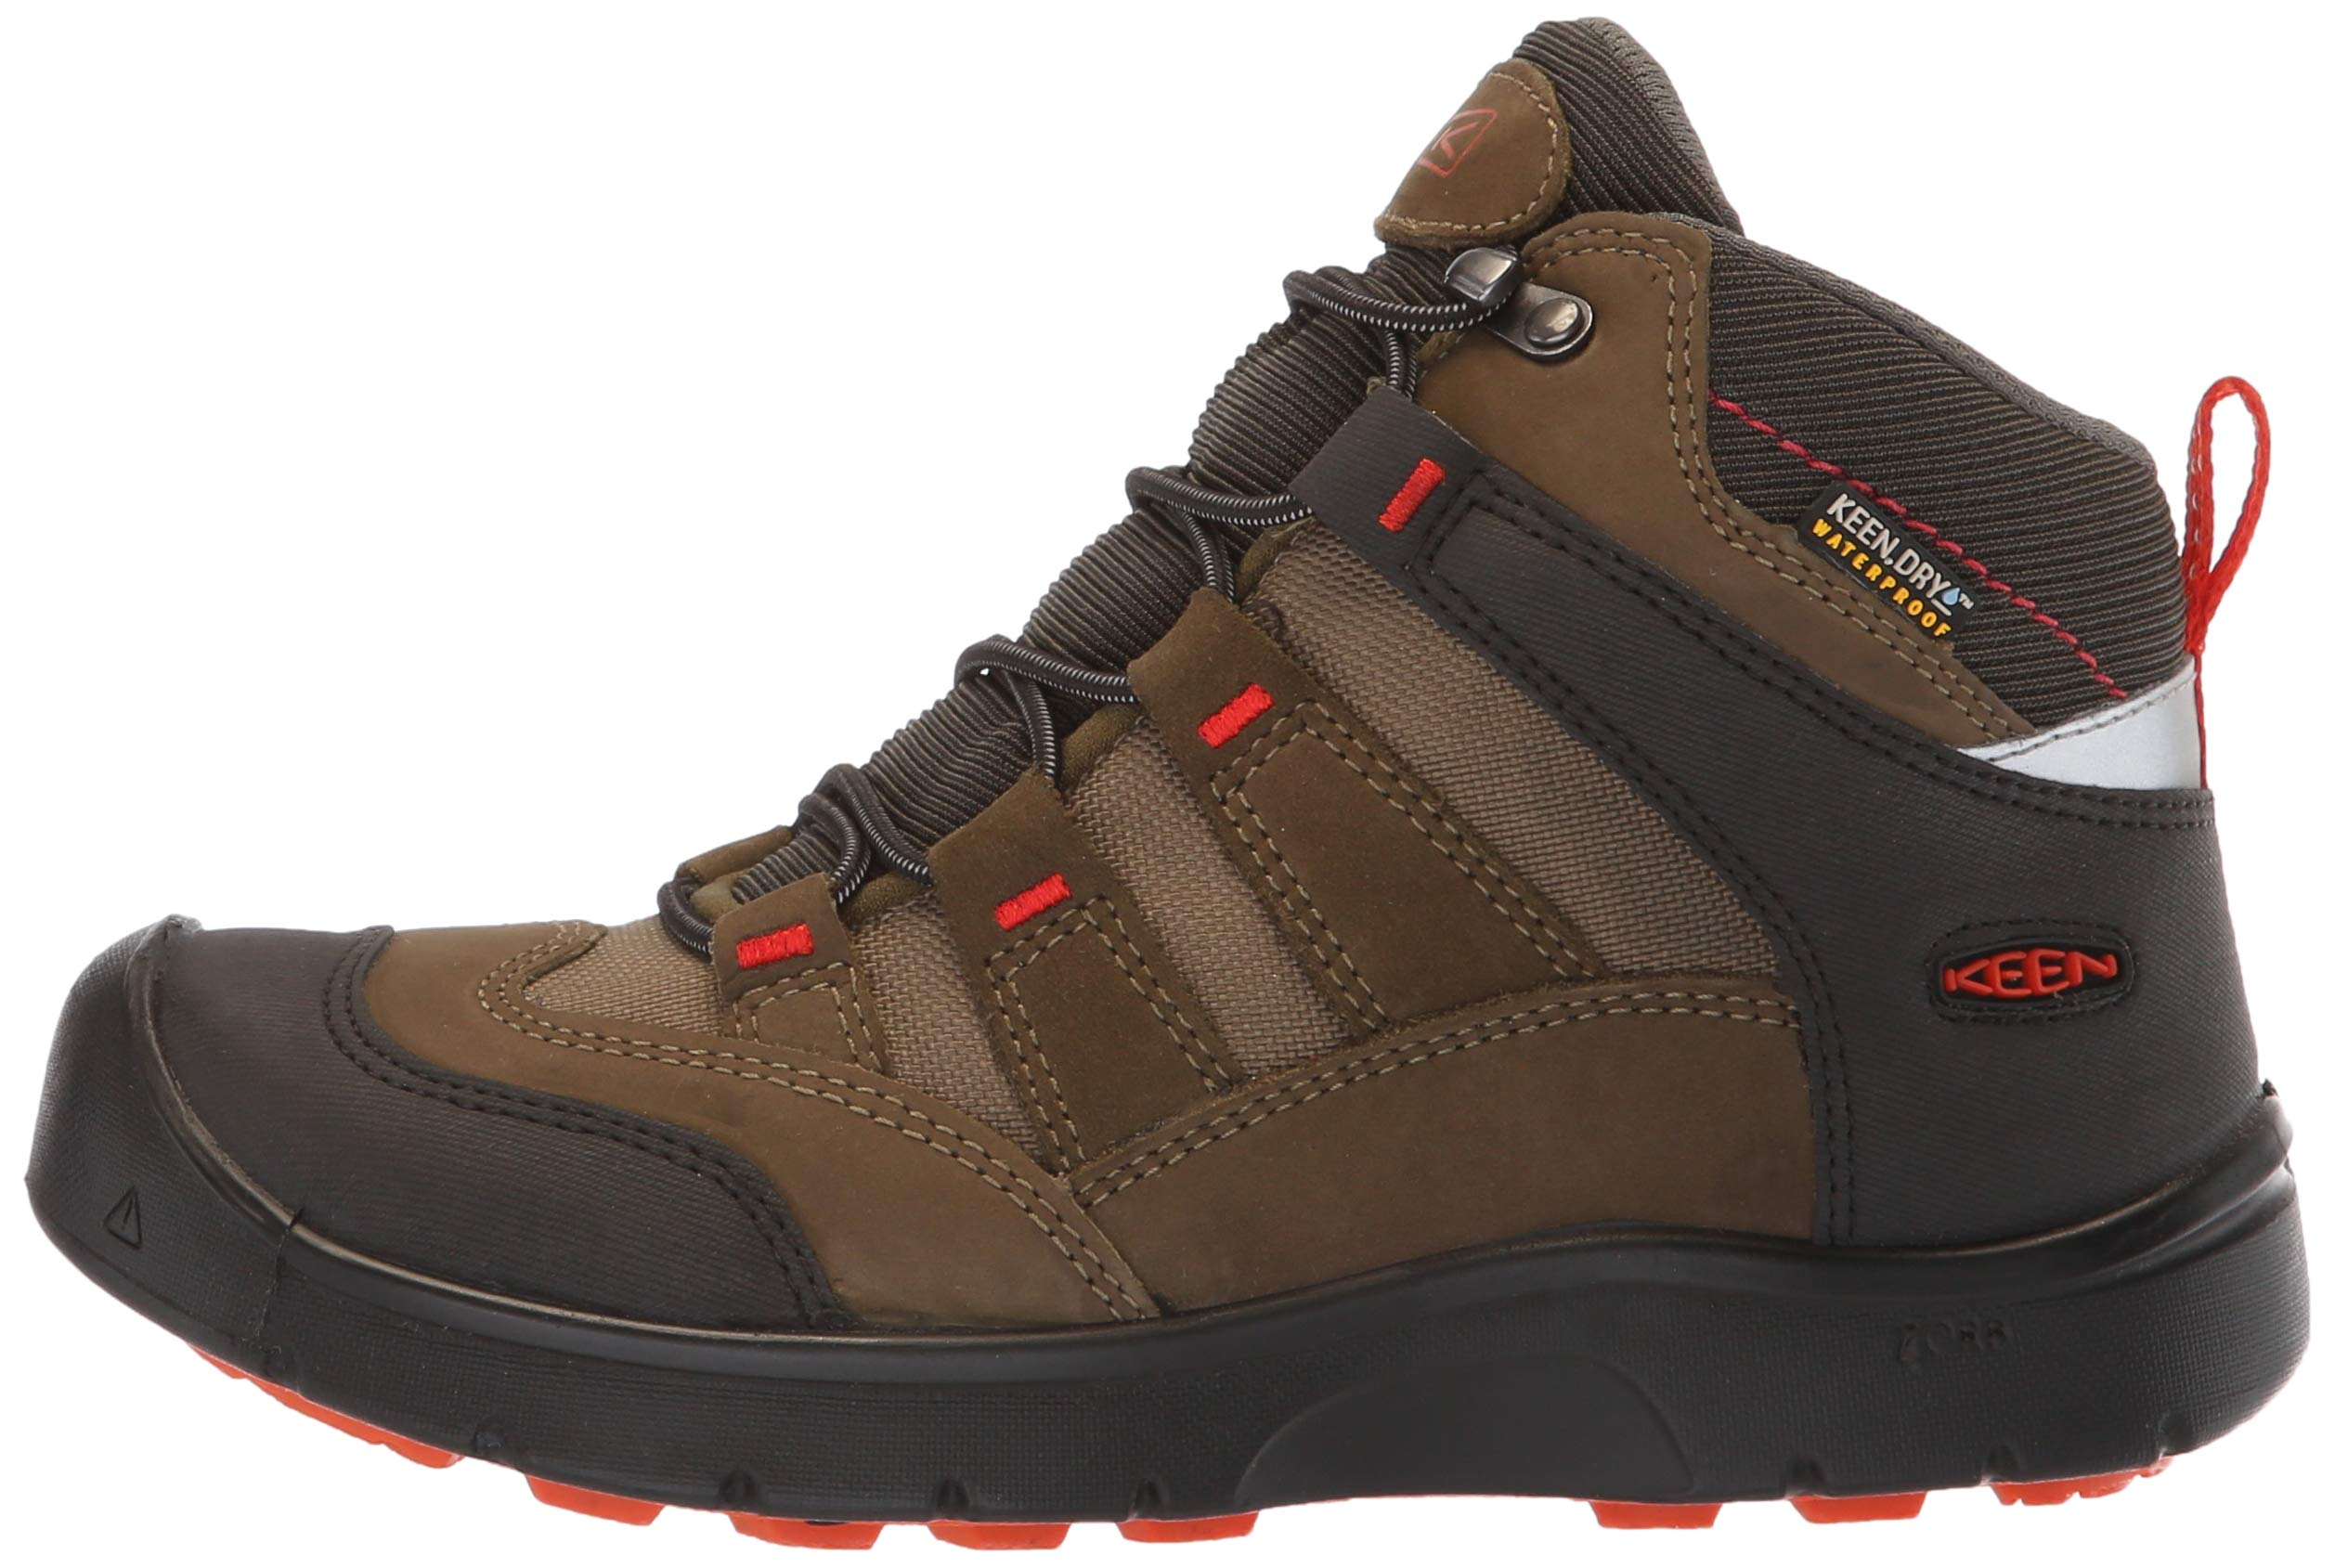 KEEN Unisex HIKEPORT MID WP Hiking Boot, Martini Olive/pureed Pumpkin, 12 M US Little Kid by KEEN (Image #5)